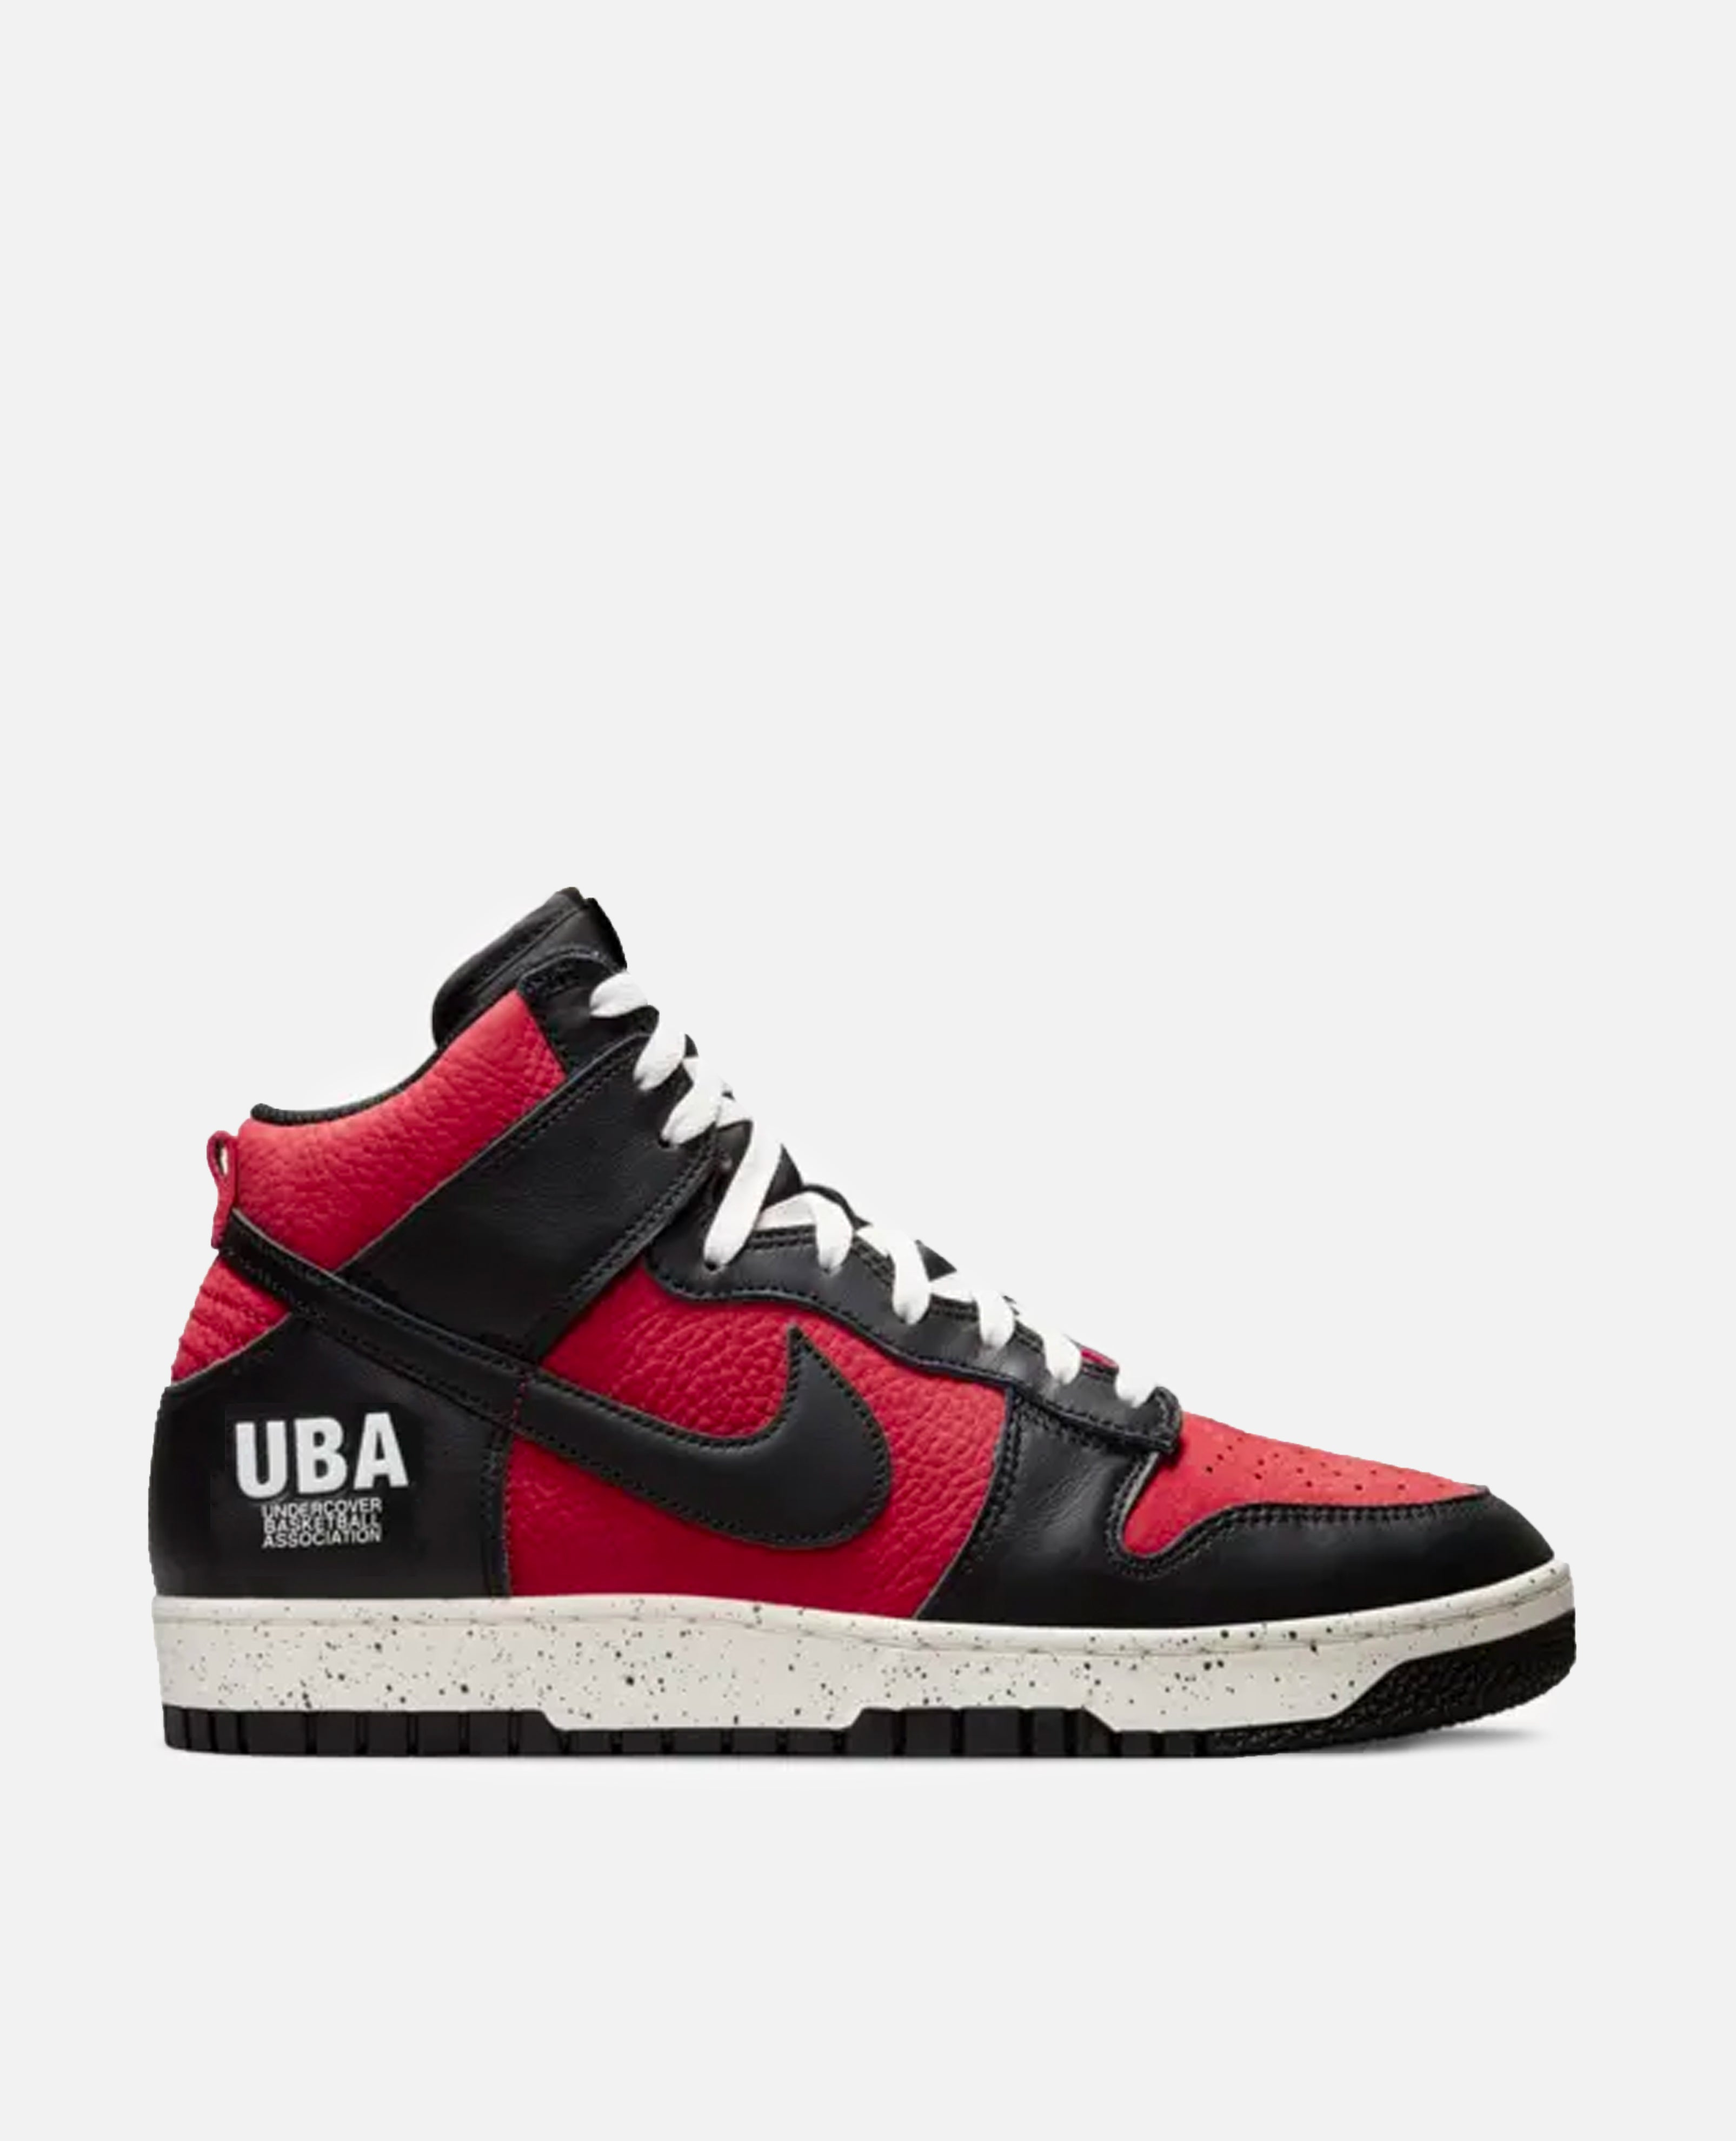 Nike x Undercover Dunk High 1985 (Gym Red/ Black-White)